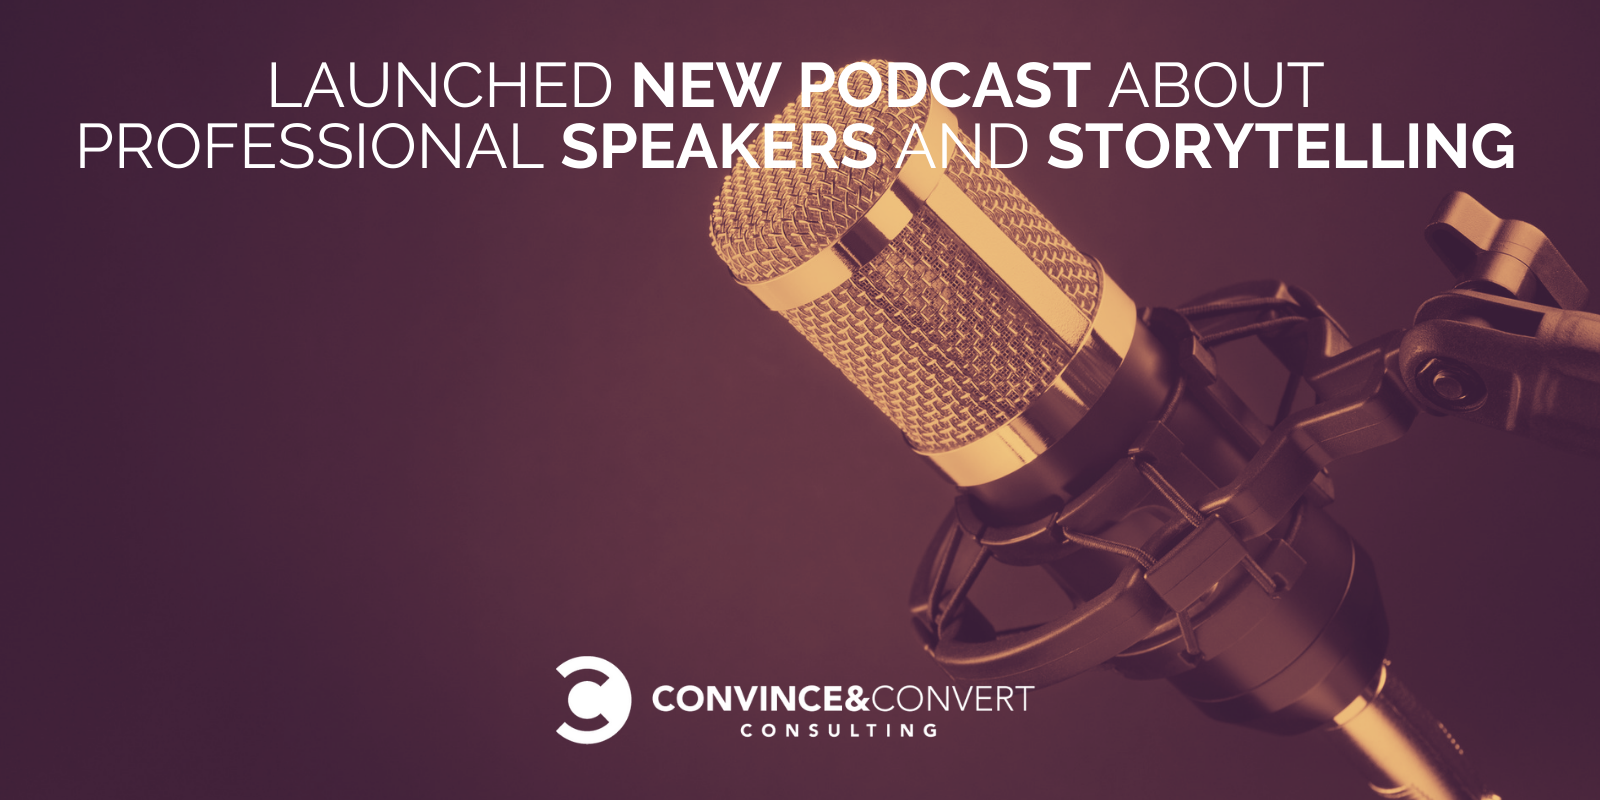 Launched New Podcast About Professional Speakers and Storytelling